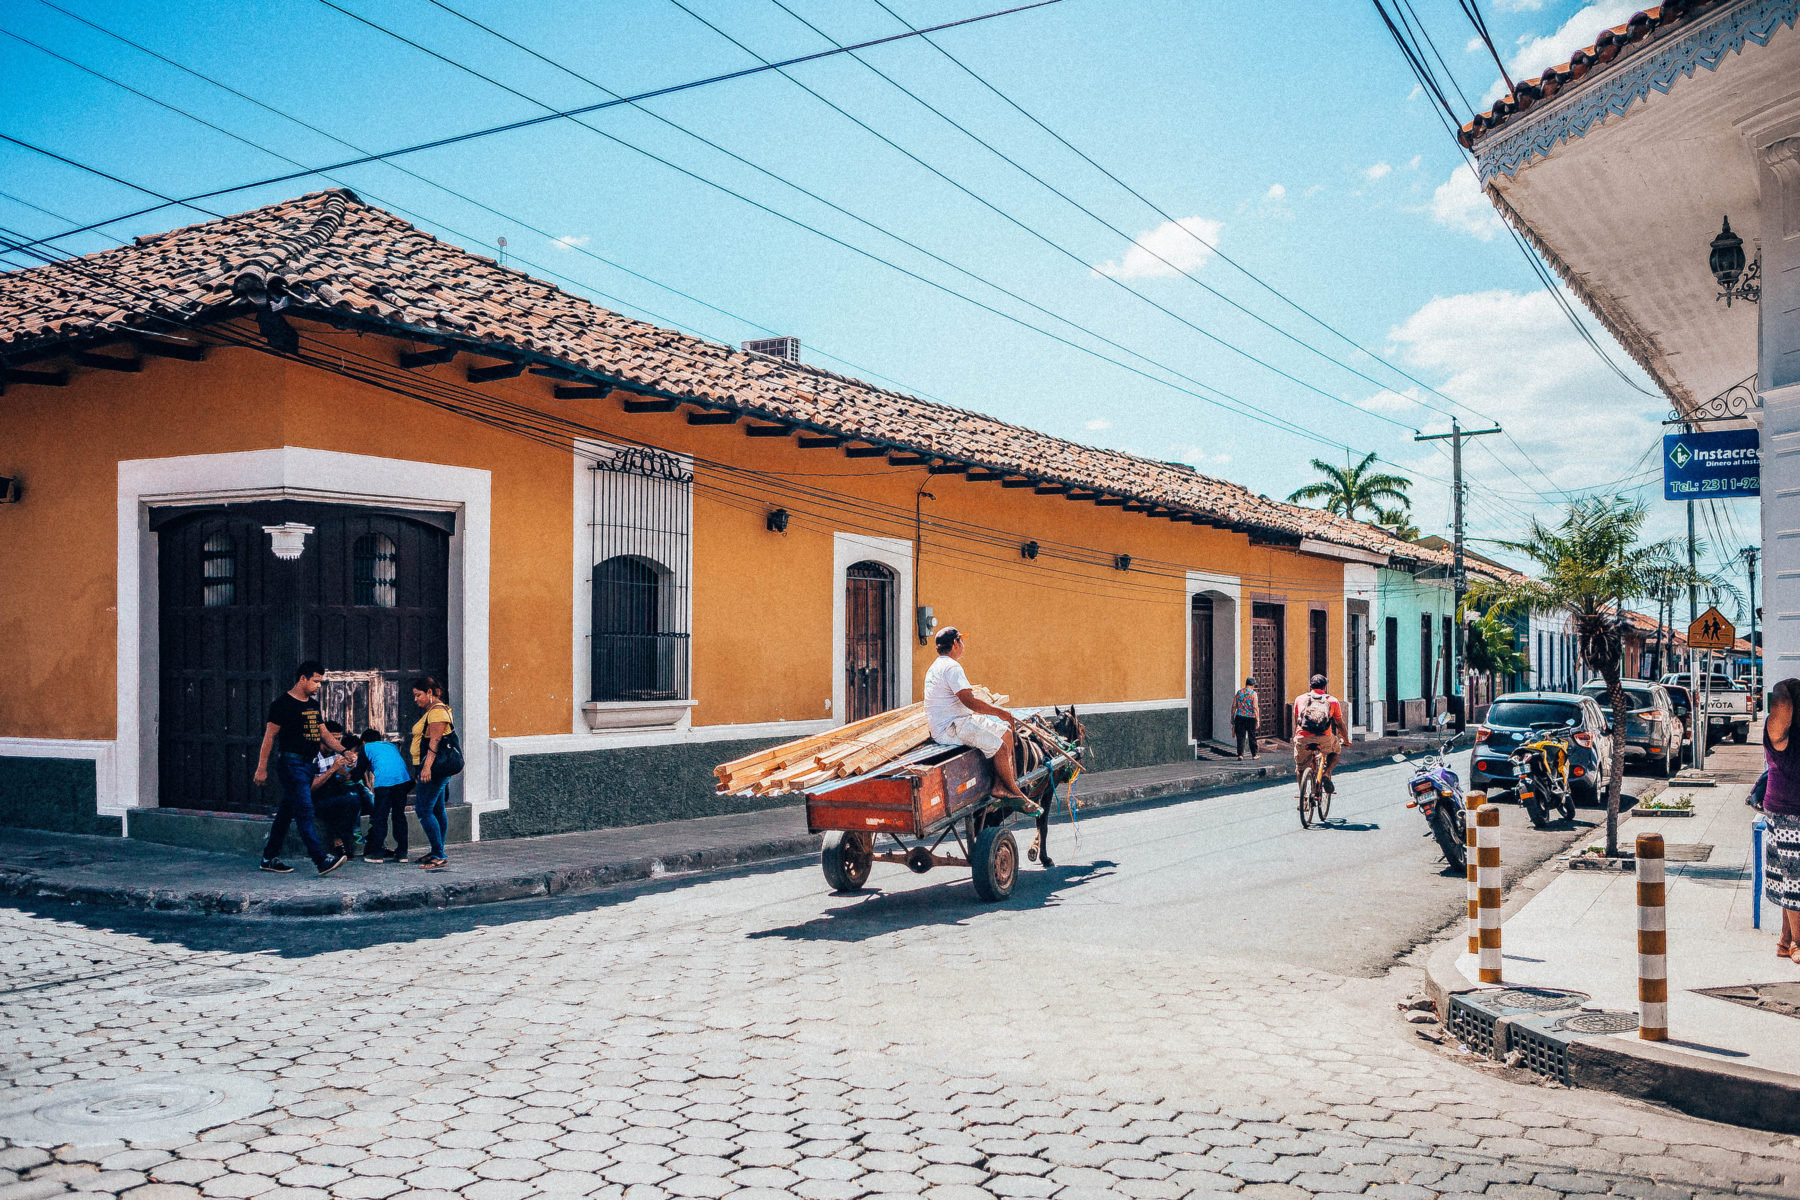 leon nicaragua old town cathedral colonial streets locals rich history colourful streets horses revolution modernity